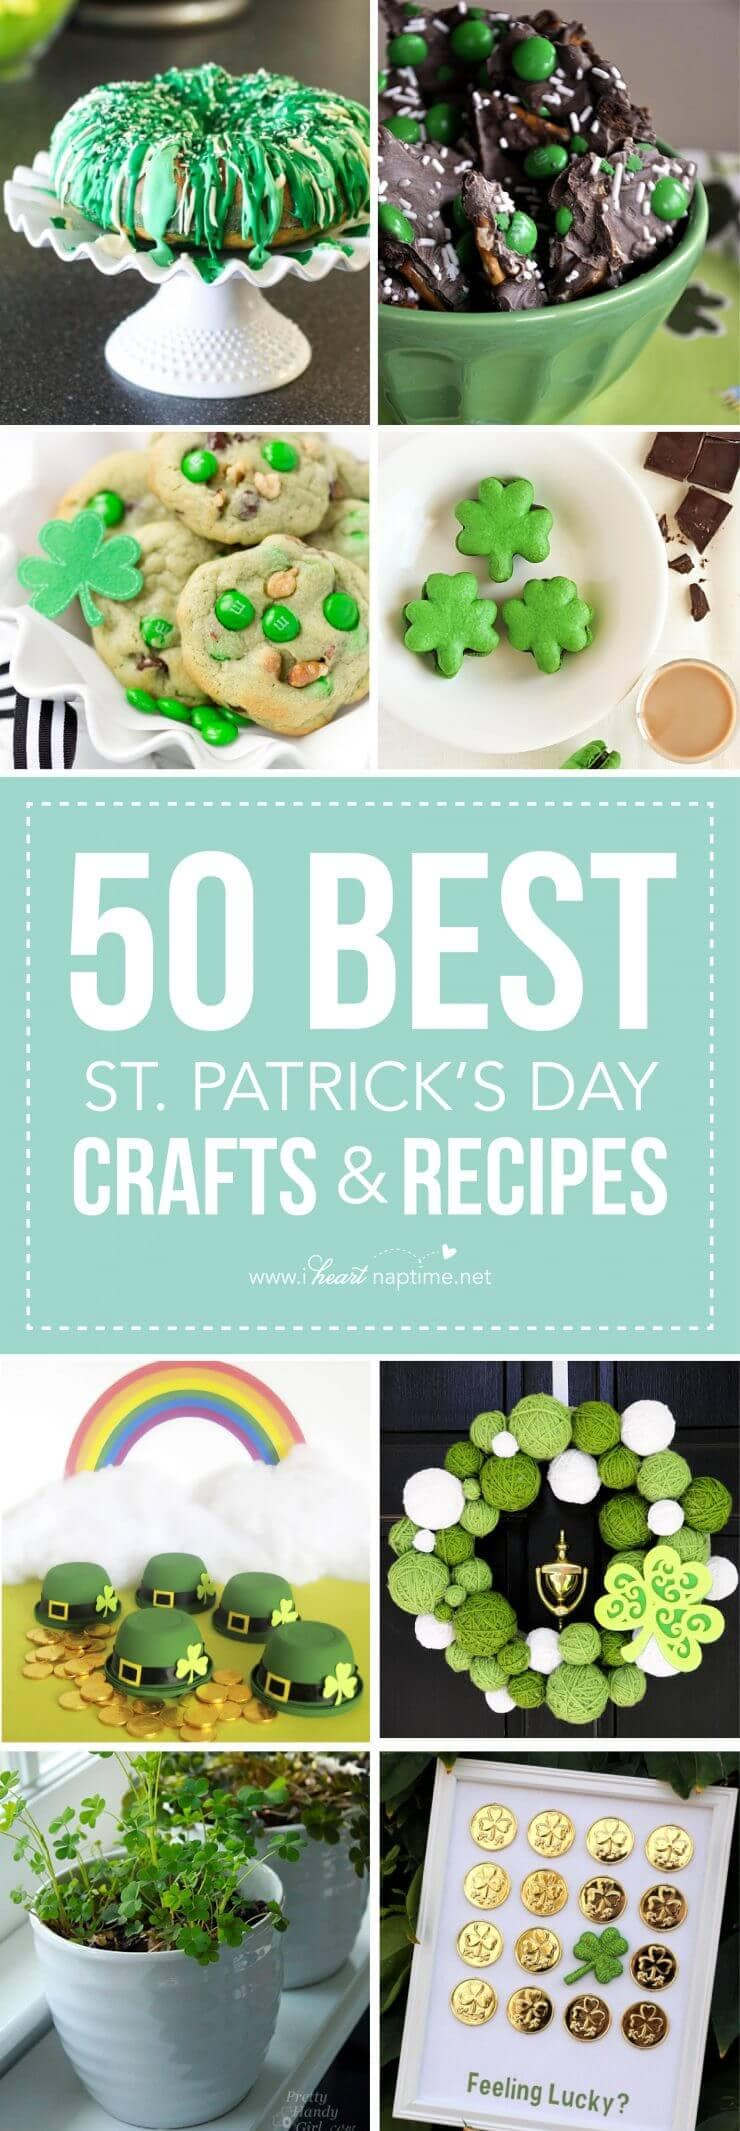 50 BEST St. Patrick's Day crafts and recipes